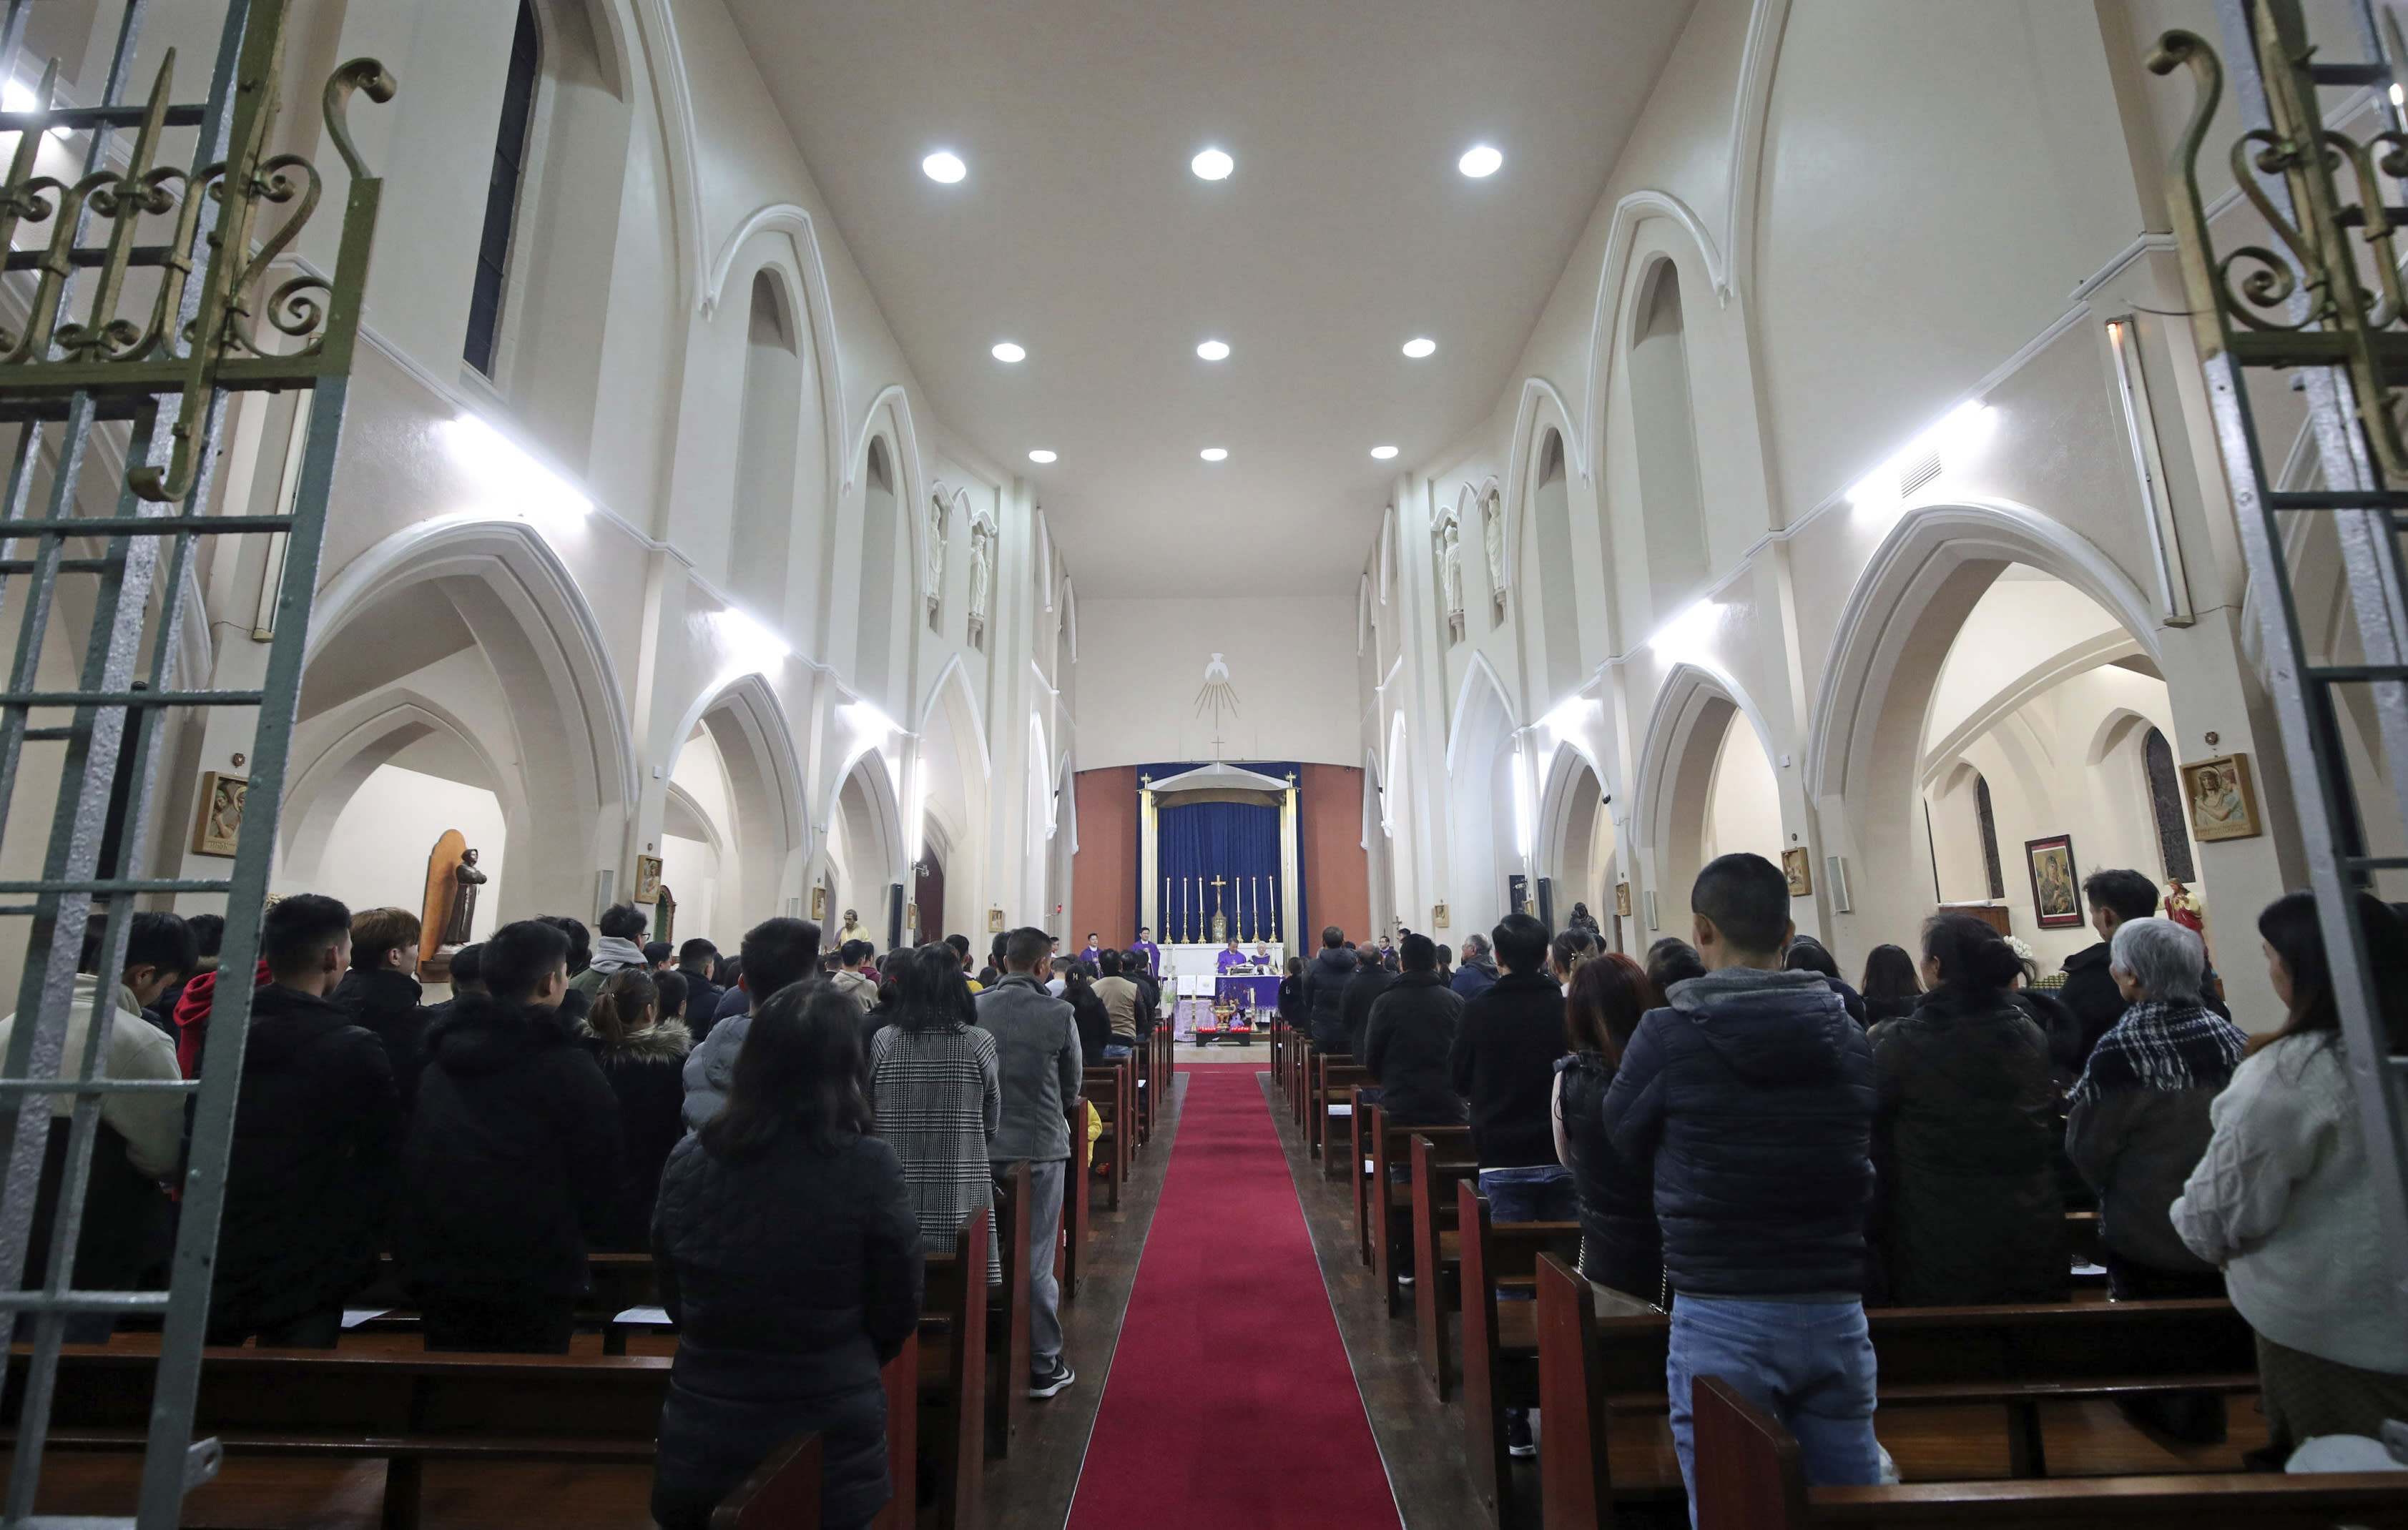 The priest of the Vietnamese Catholic Cathedral in east London, Father Simon Thang Duc Nguyen, speaks at The Holy Name and Our Lady of the Sacred Heart Church, London's Vietnamese church, in east London. Saturday Nov. 2, 2019, during a service and vigil to honor the 39 victims who died in a refrigerated truck container found on Oct. 23. The community is mourning the unidentified victims, who were trying to enter Britain in hopes of finding opportunity. (Yui Mok/PA via AP)